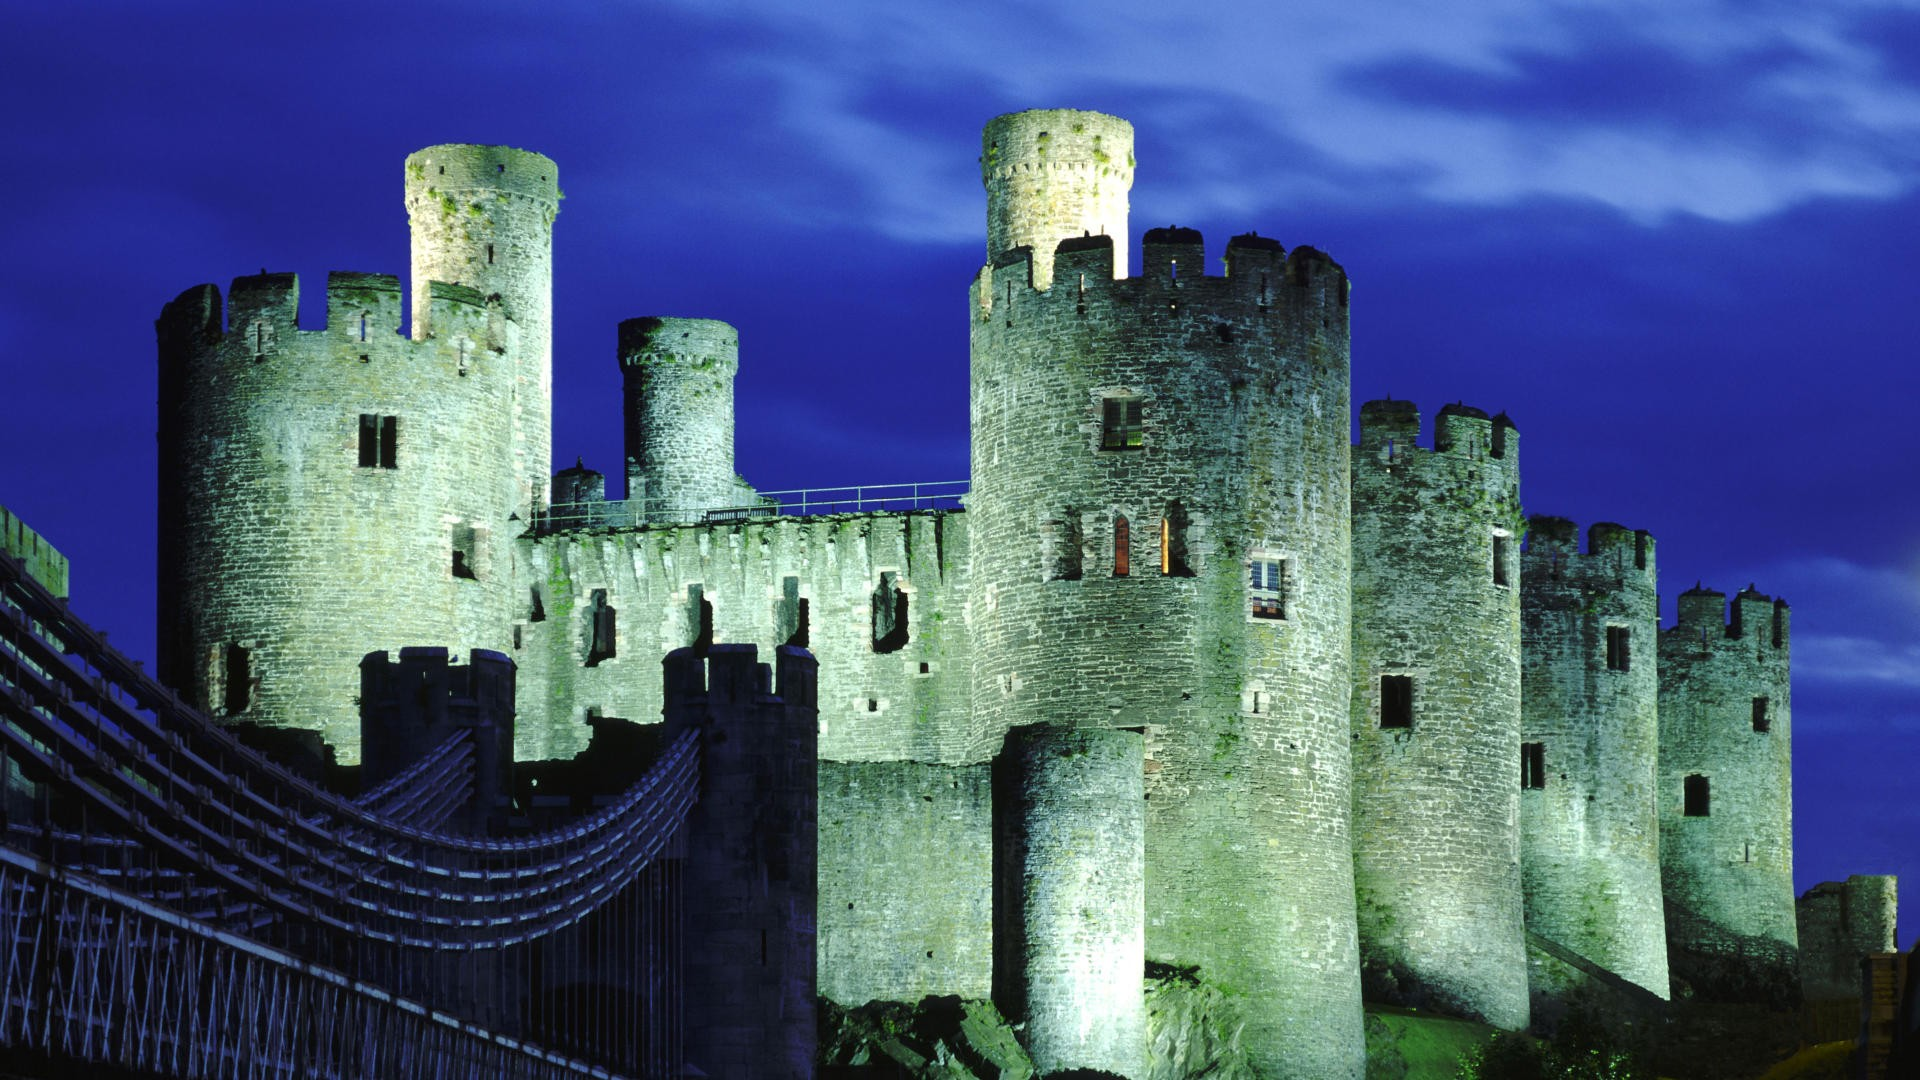 castles wales wallpapers castle wallpaper images 1920x1080 1920x1080